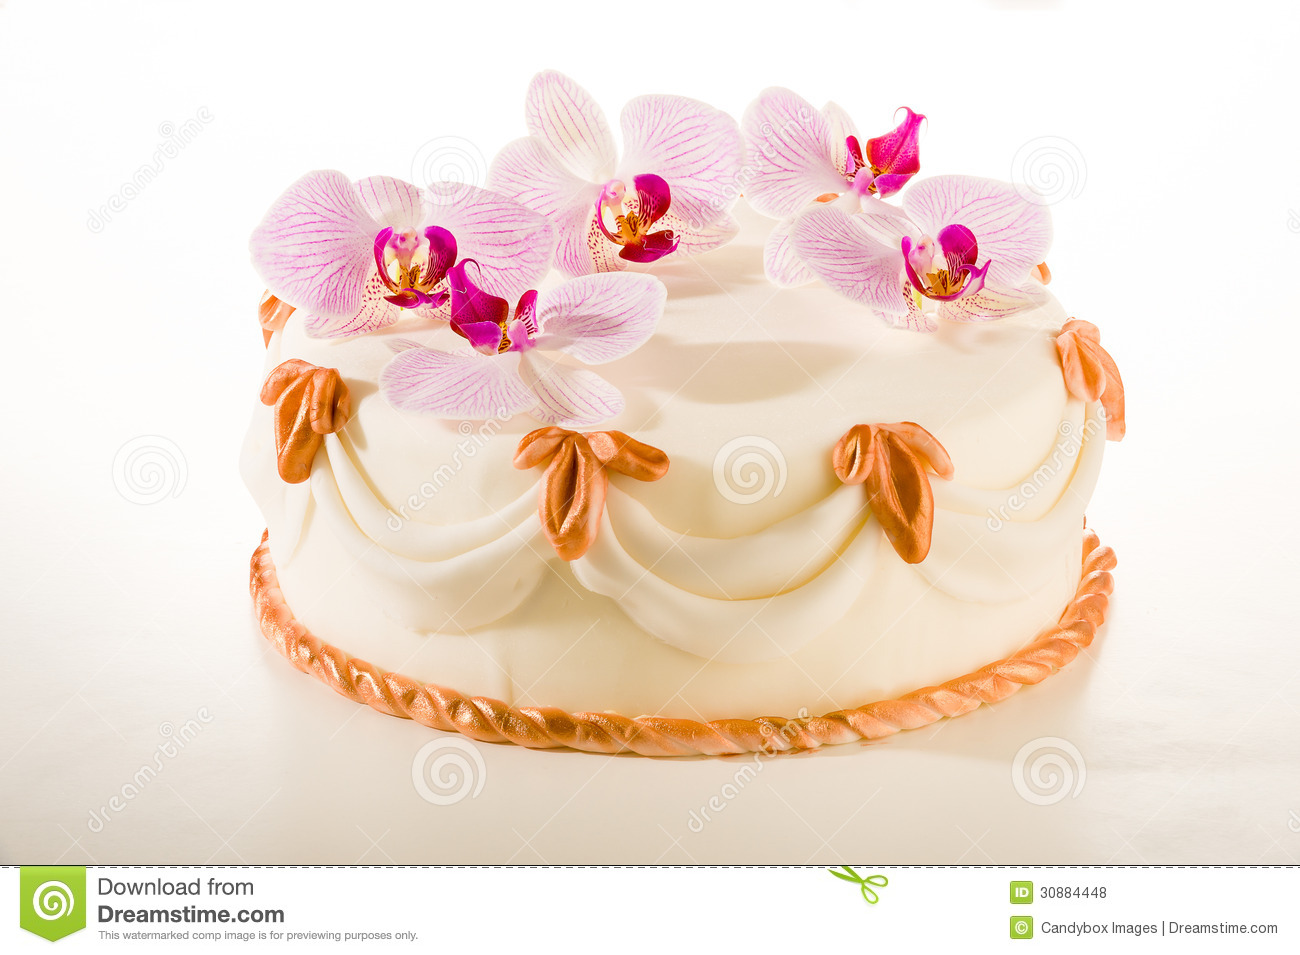 Tasty Decorated Cake In White Marzipan Coating Stock Photo